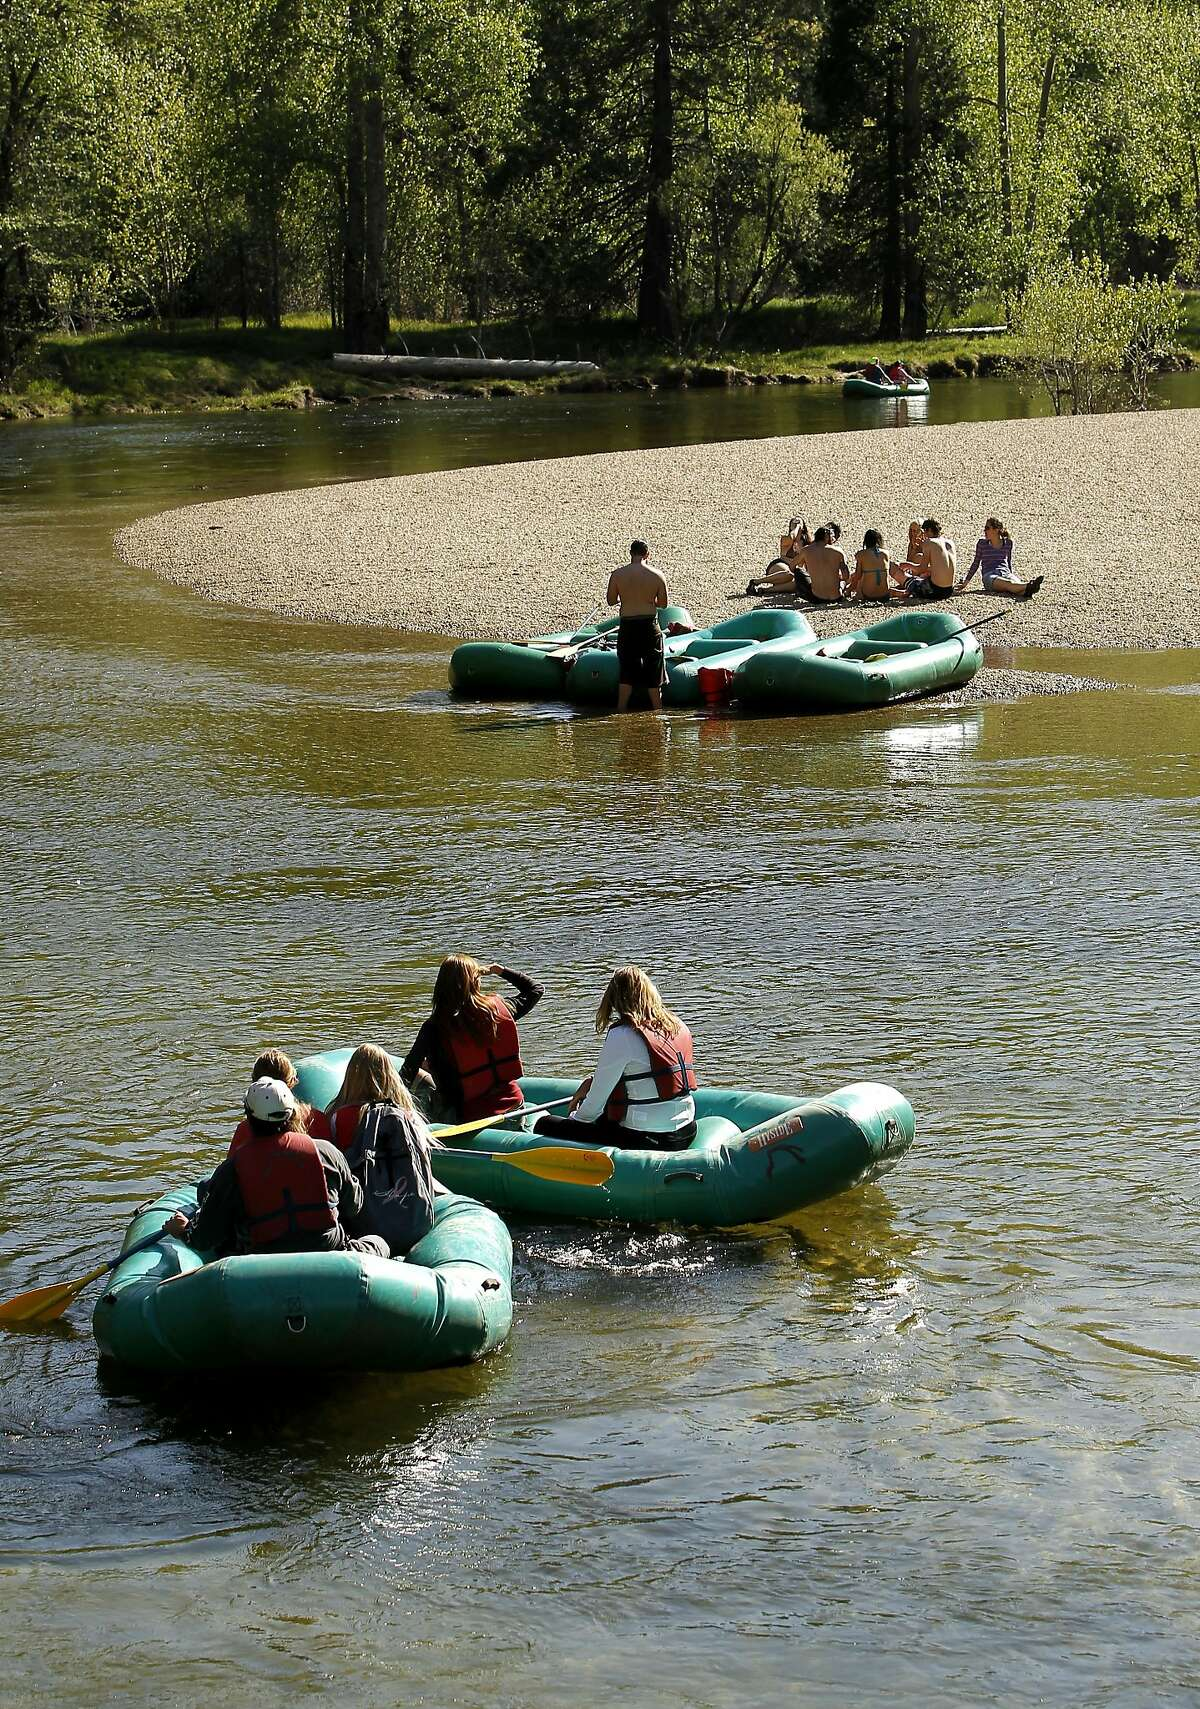 Rafters drift along the Merced River in Yosemite National Park, on Friday May 11, 2012.